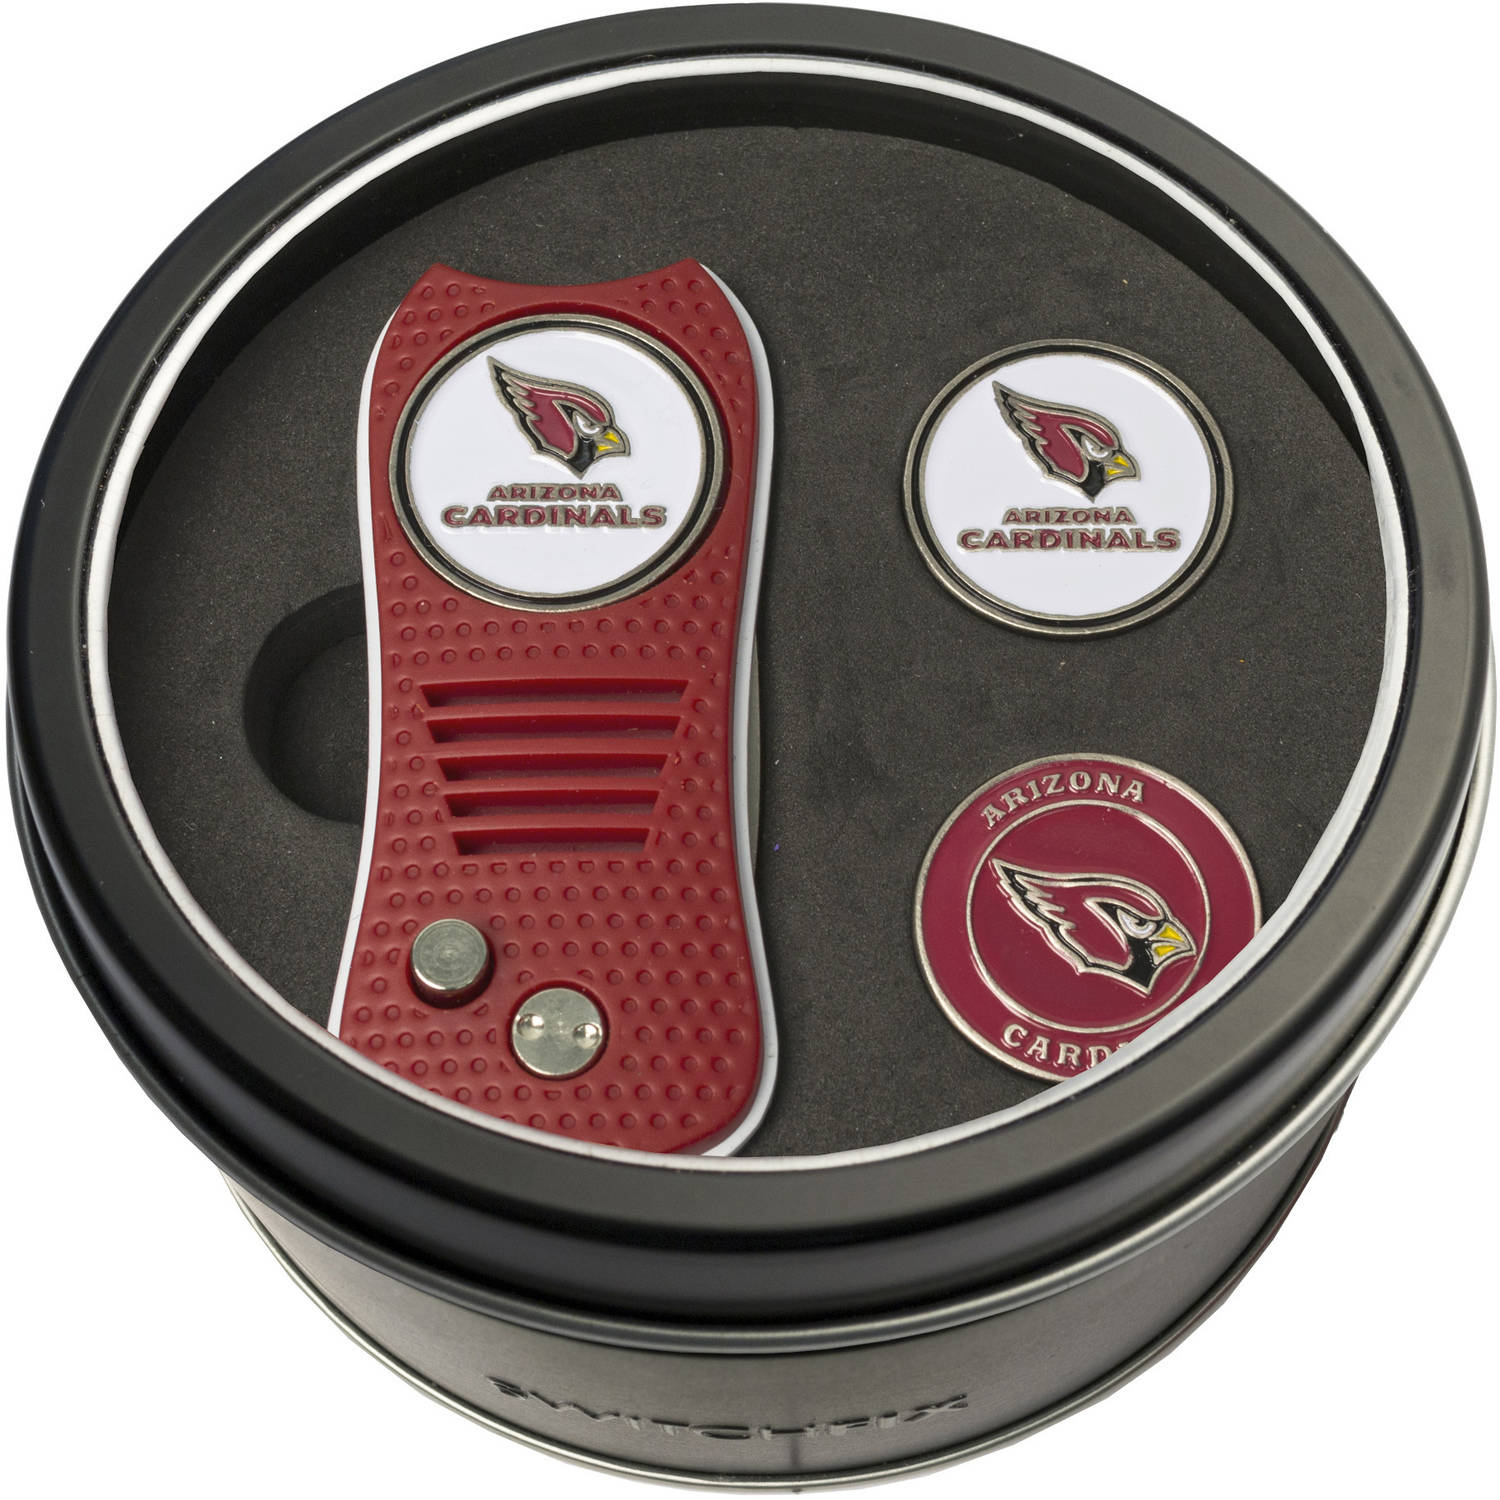 Team Golf NFL Tin Gift Set with Switchfix Divot Tool and 2 Ball Markers